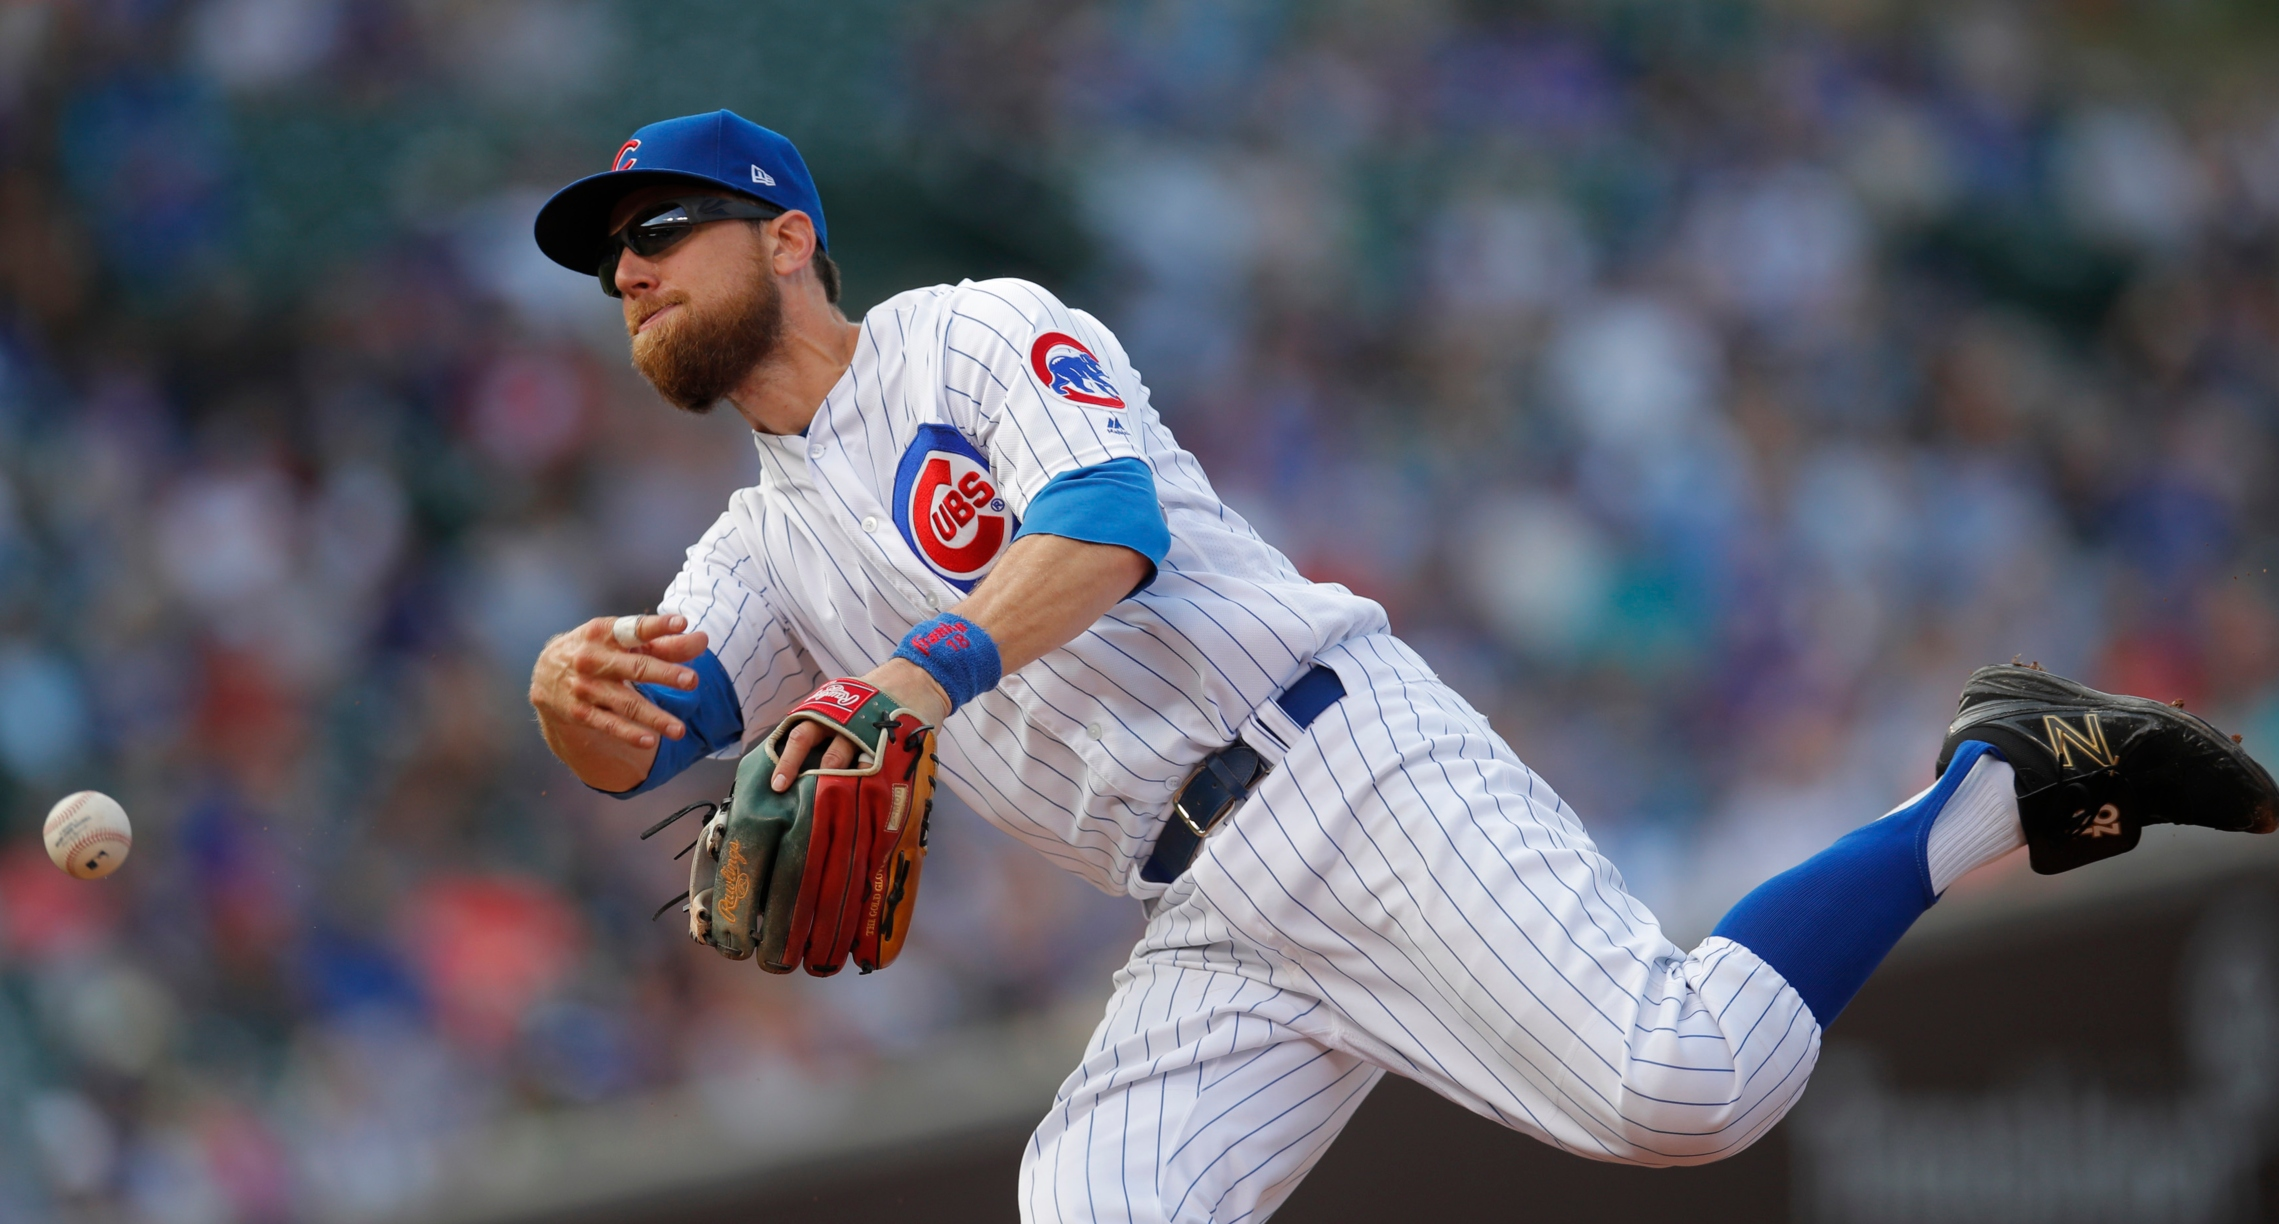 Cubs About 1 Week From Knowing Ben Zobrist's Status